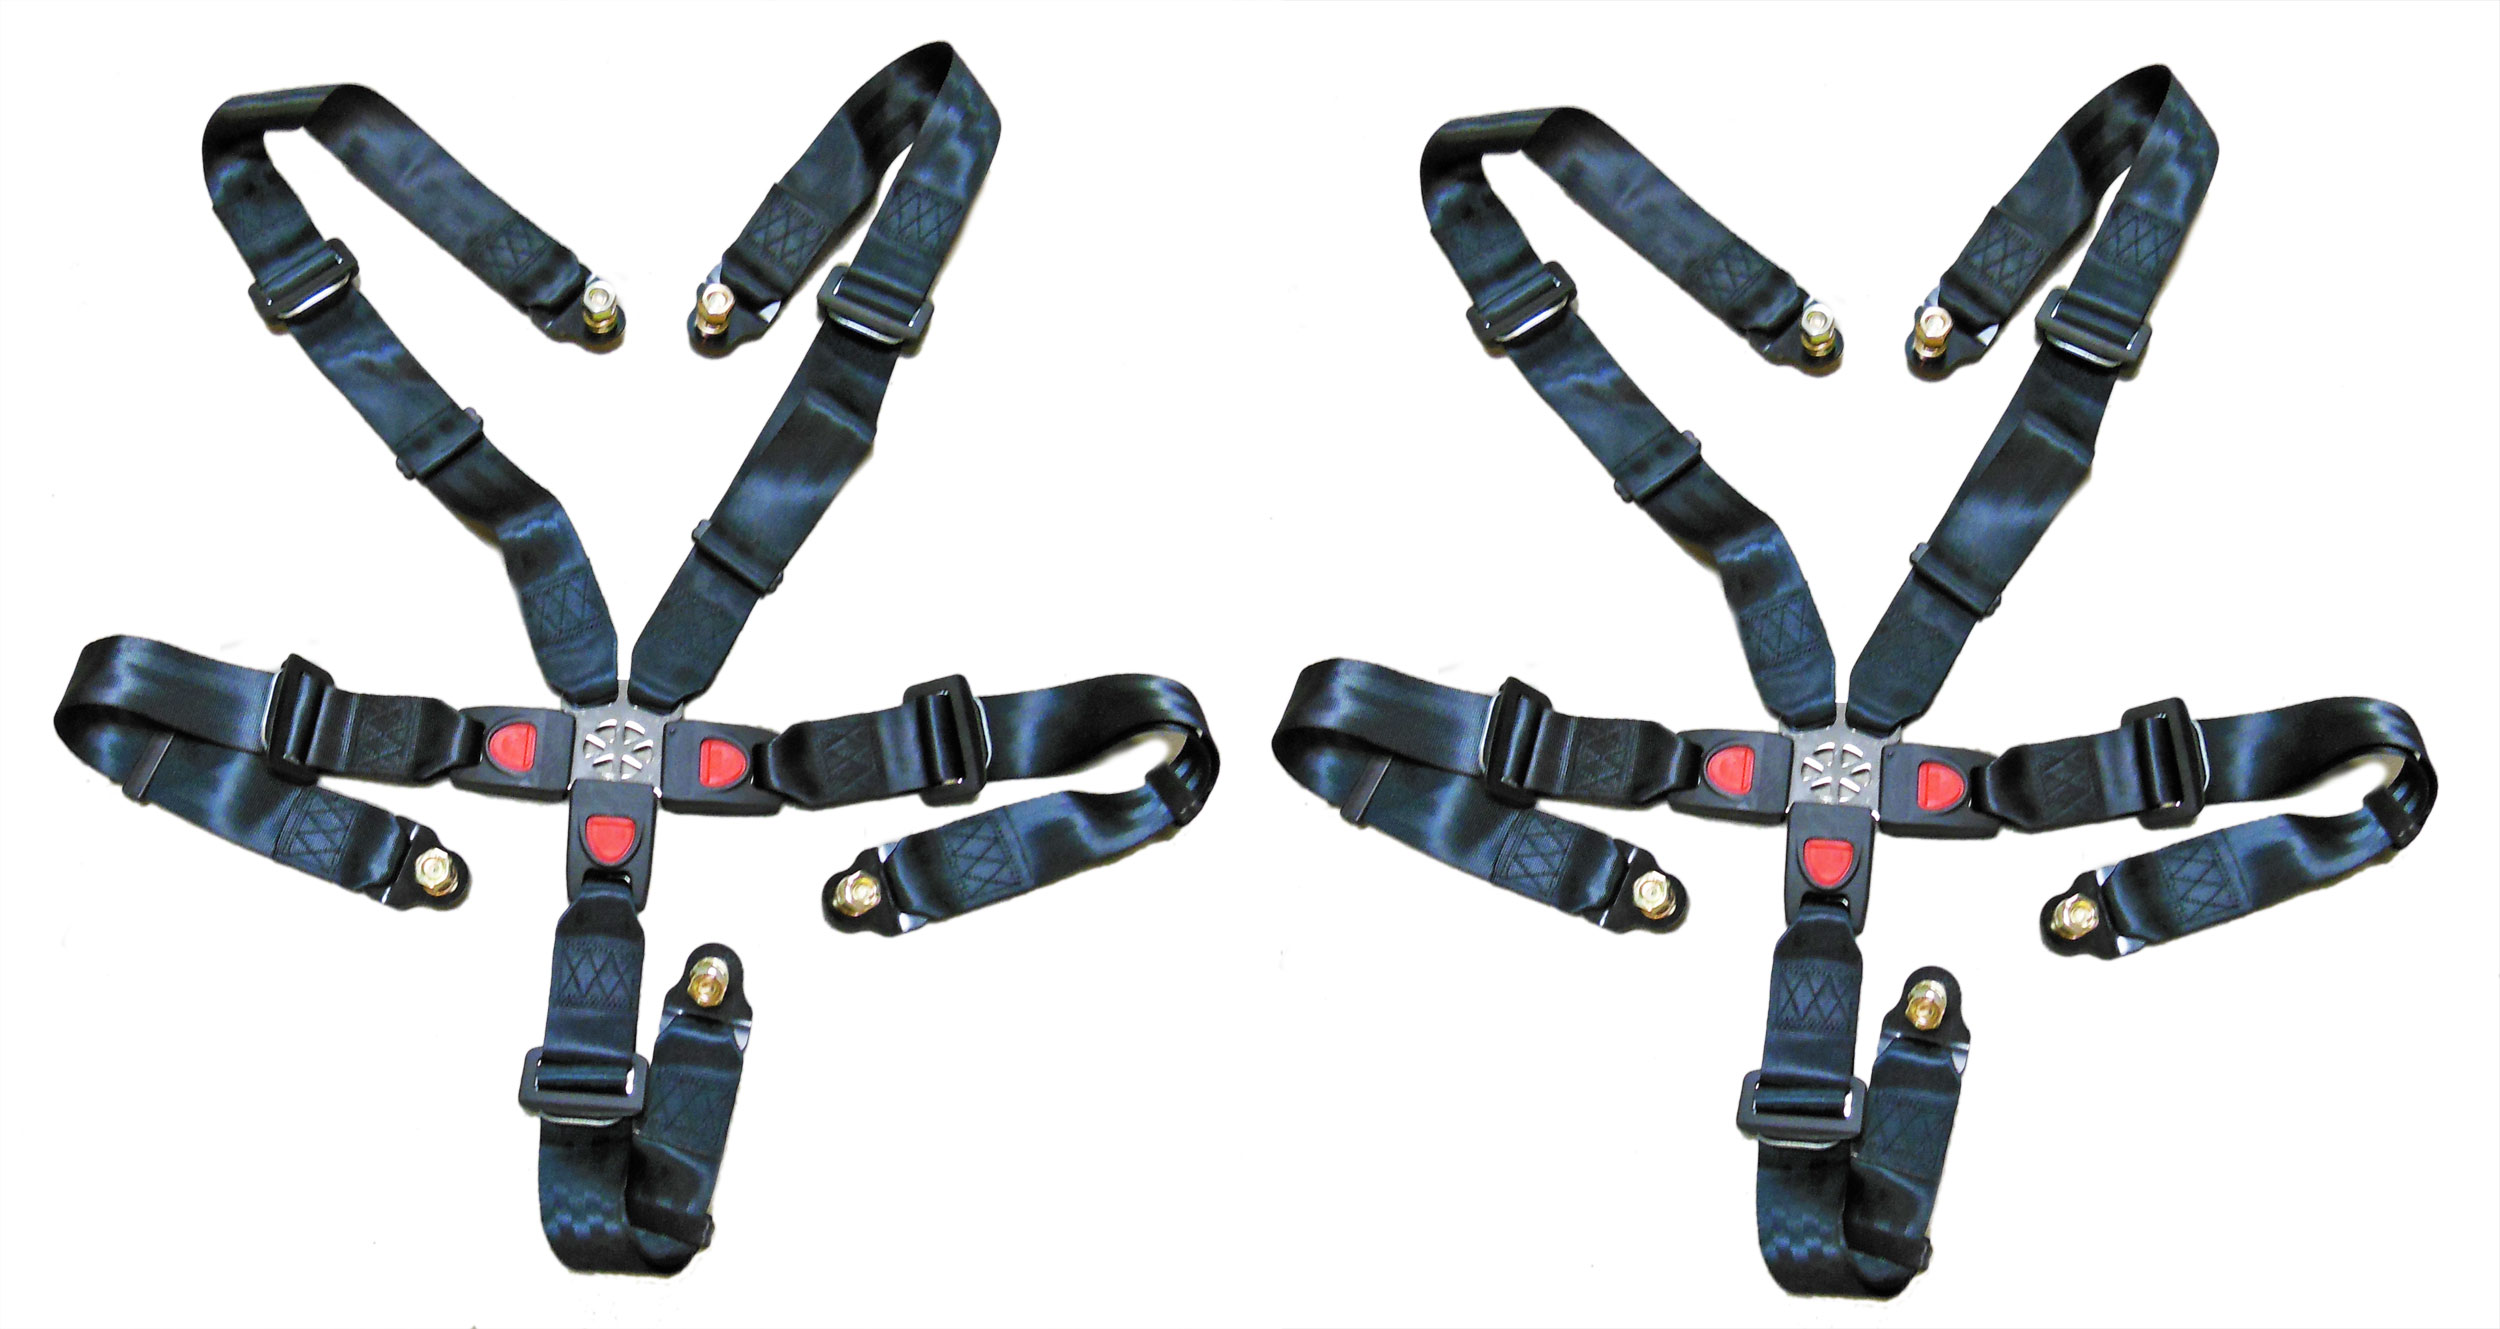 Safety Belt Set Of 2 5 Point Seat Belt Shoulder Harness 6 000 354 K501116 Bmi Karts And Parts